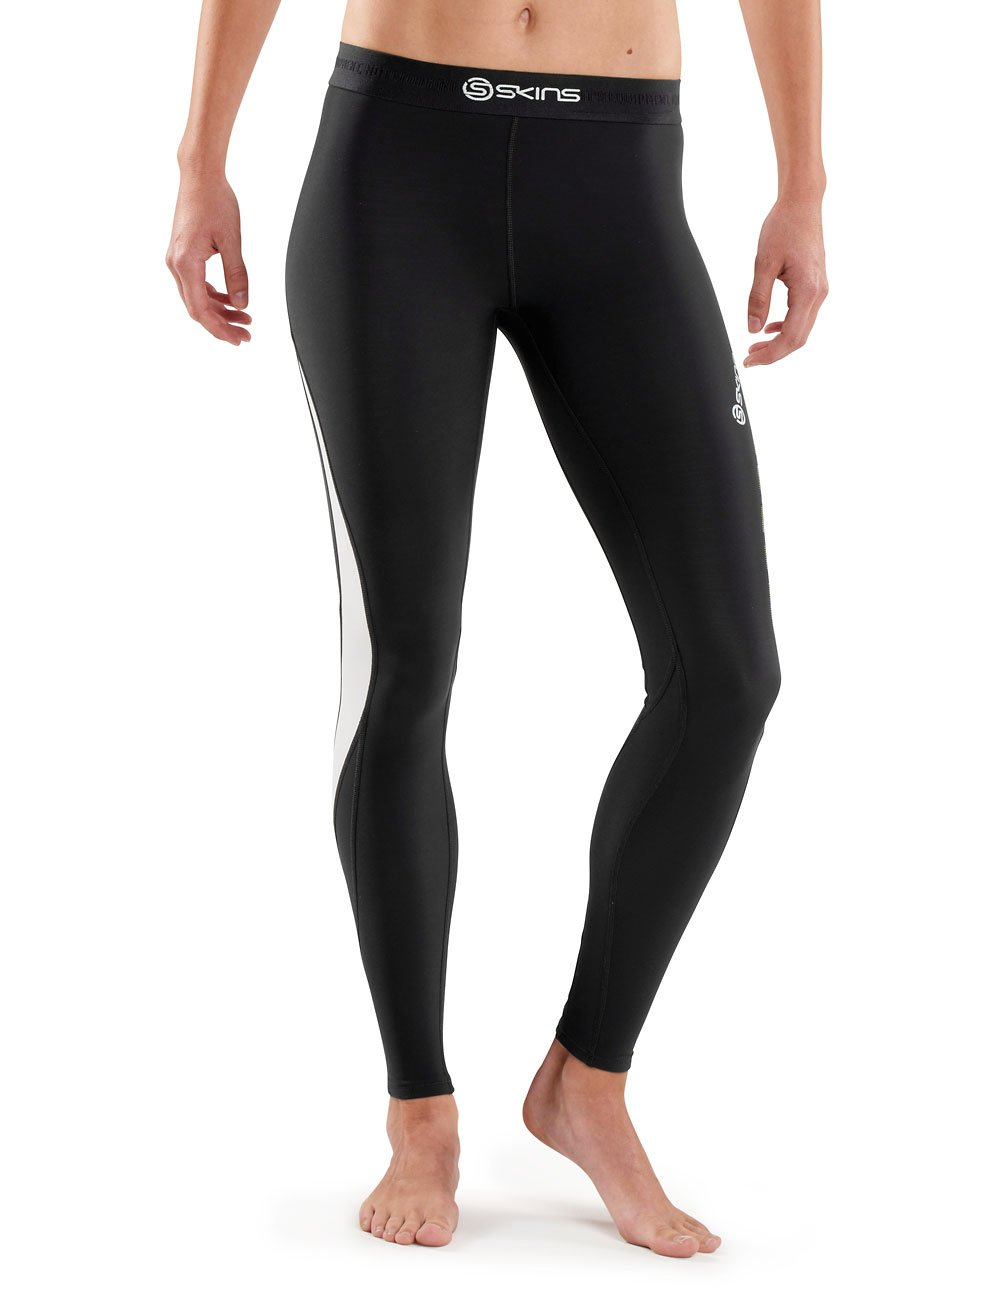 Skins Womens DNAmic Women's Thermal Compression Long Tights, Black/Cloud, Medium